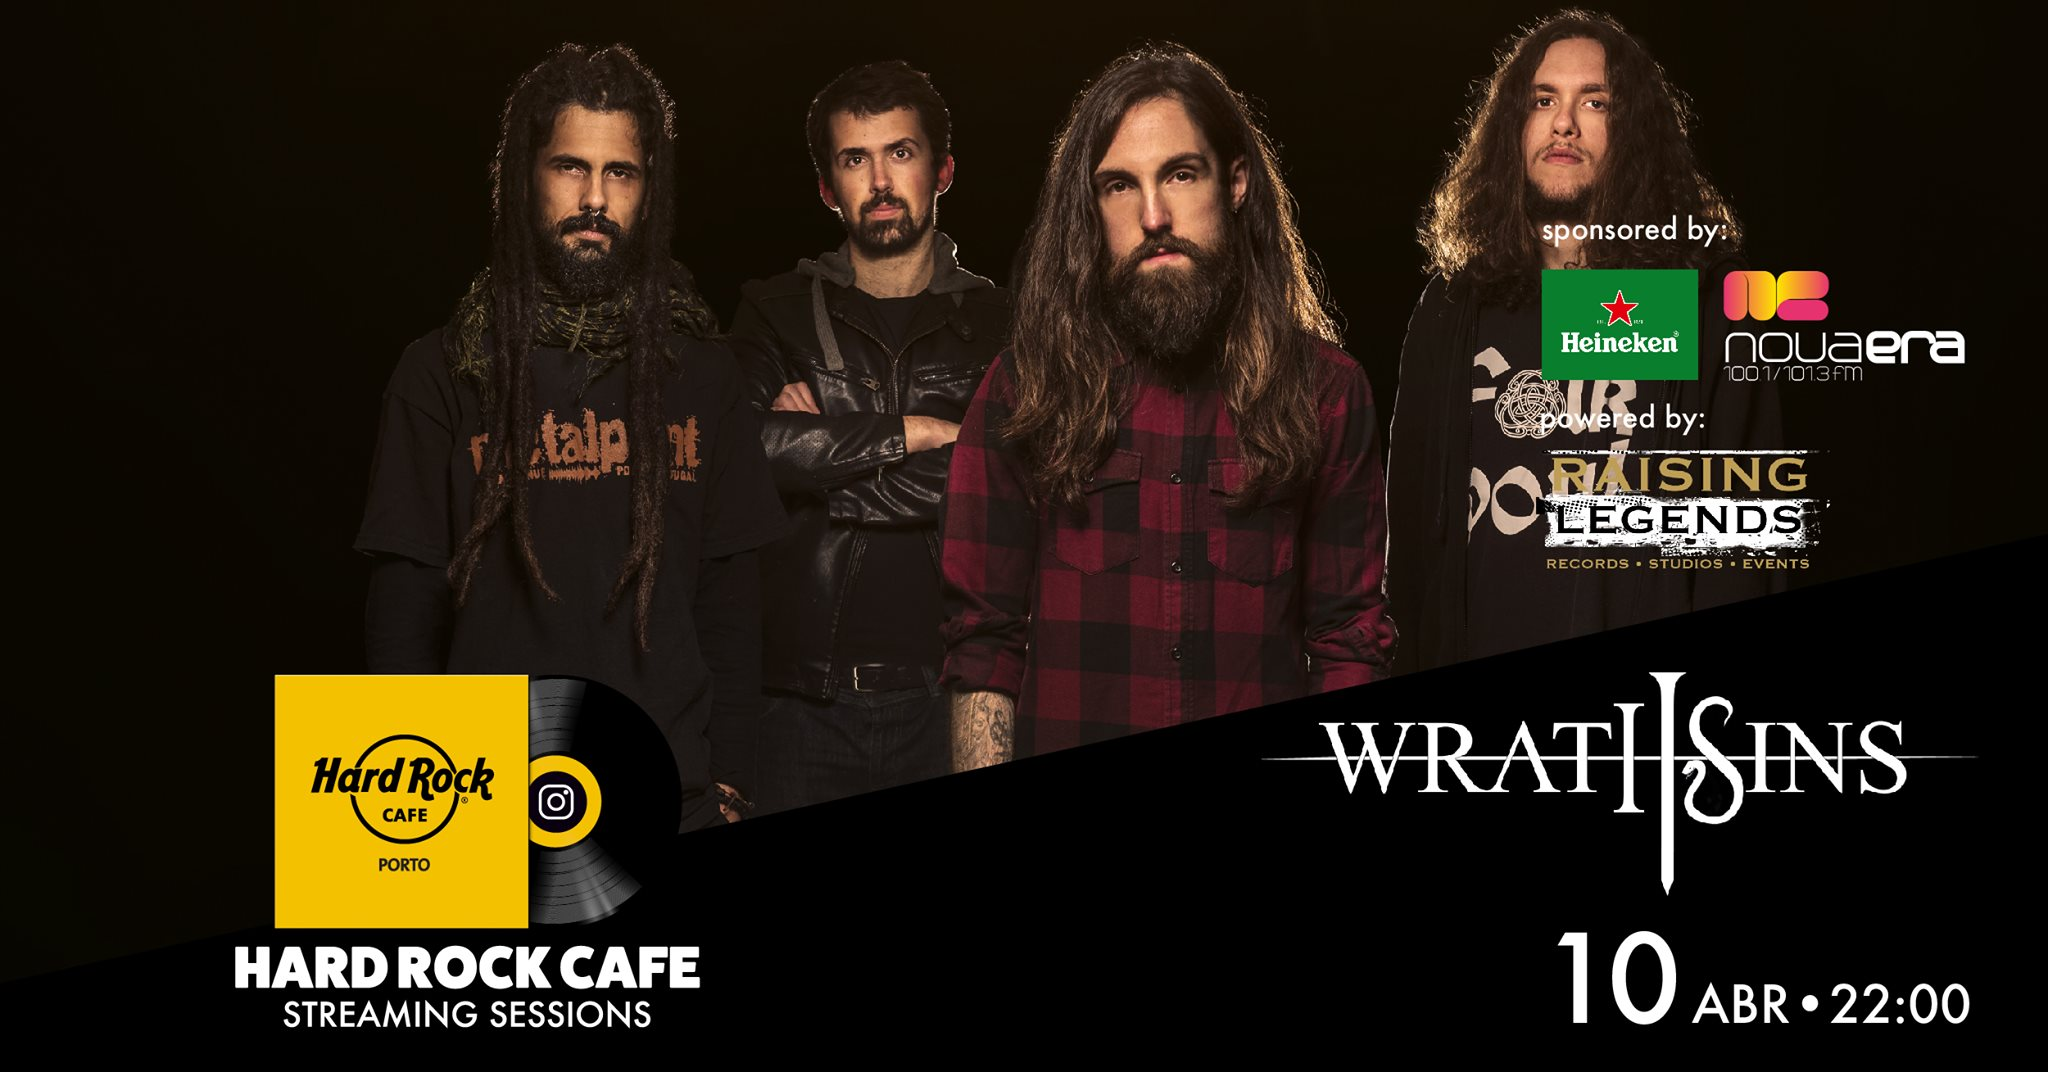 Wrath Sins | Hard Rock Cafe Streaming Sessions